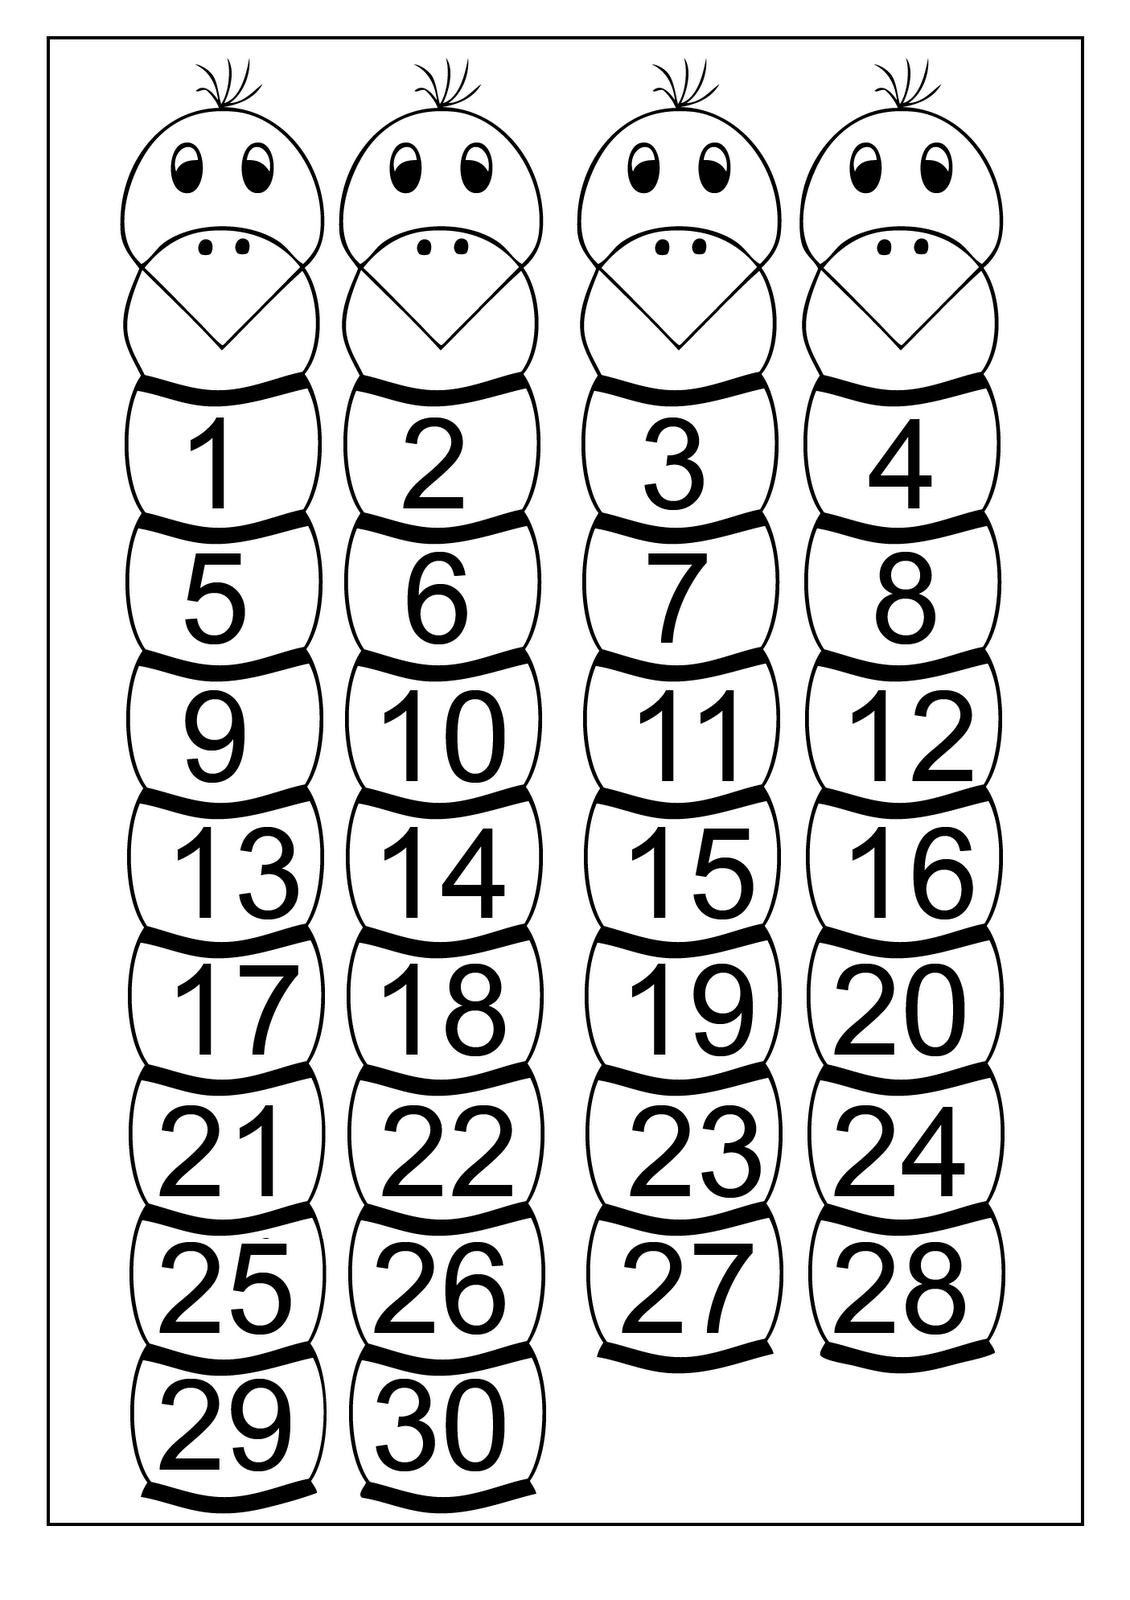 Free Printable Number Chart 1-30 | Activity Shelter